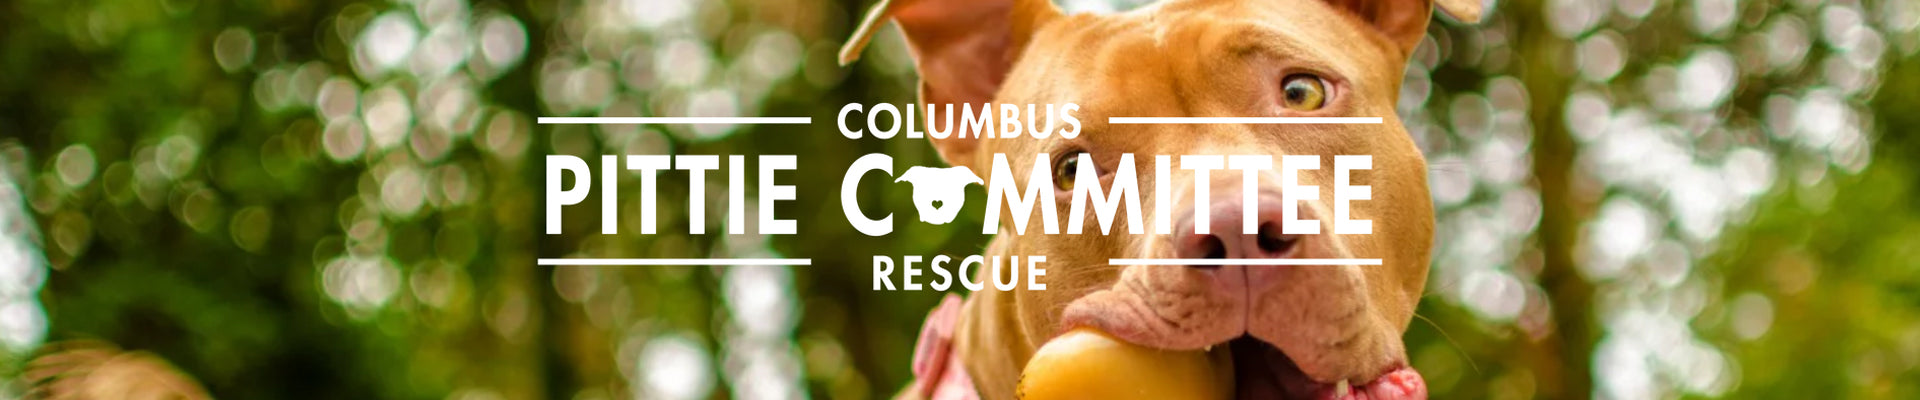 Columbus Pittie Committee